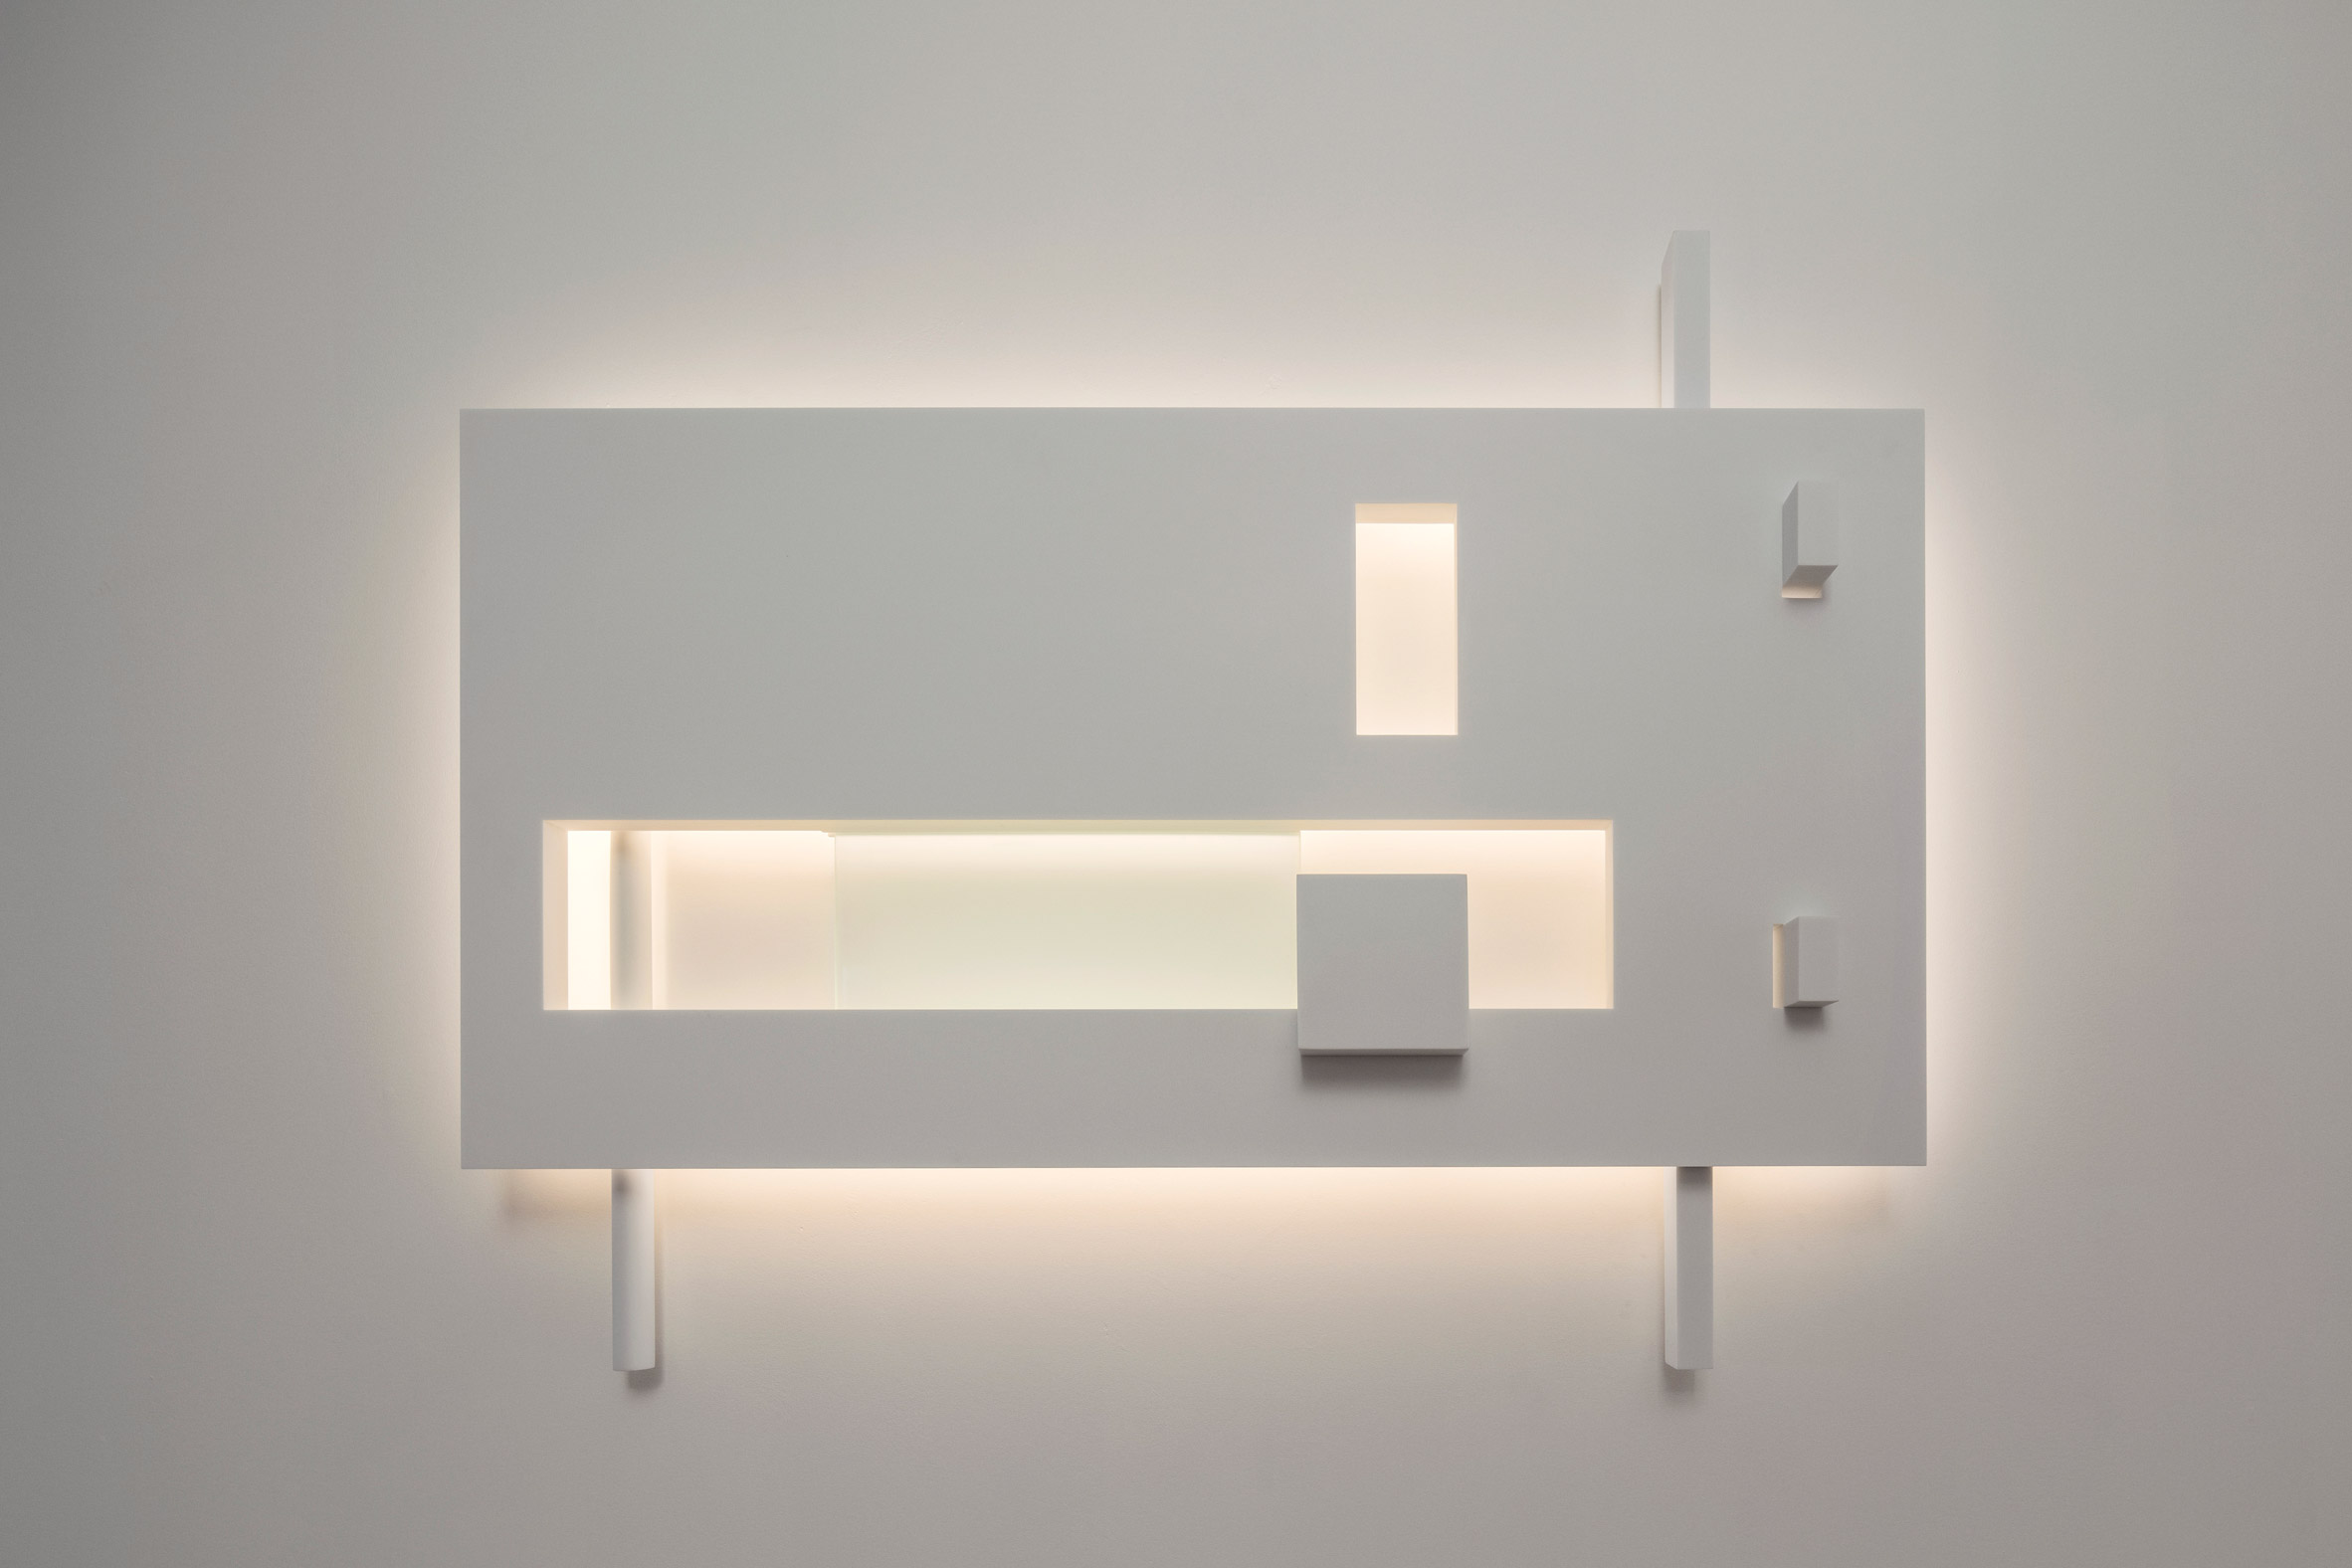 Fall in Love with Richard Meier's Minimal Lighting Collection 1 lighting collection Fall in Love with Richard Meier's Minimal Lighting Collection Fall in Love with Richard Meiers Minimal Lighting Collection 3